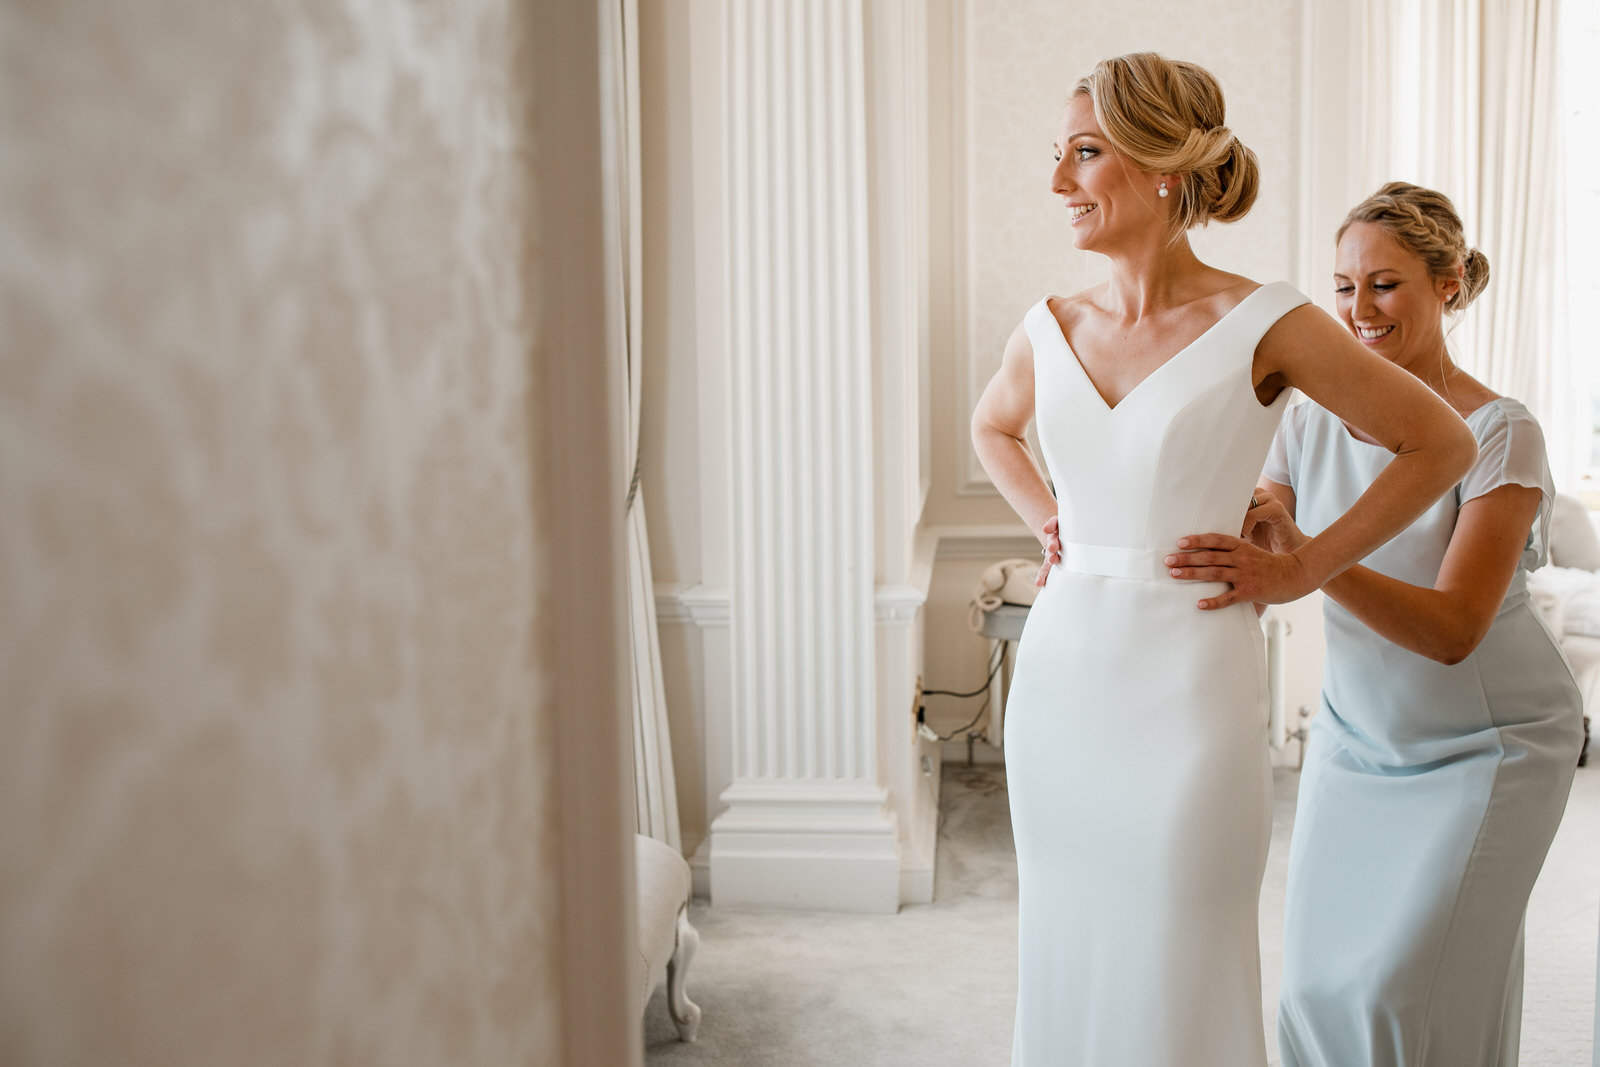 bride putting on dress with help from bridesmaid